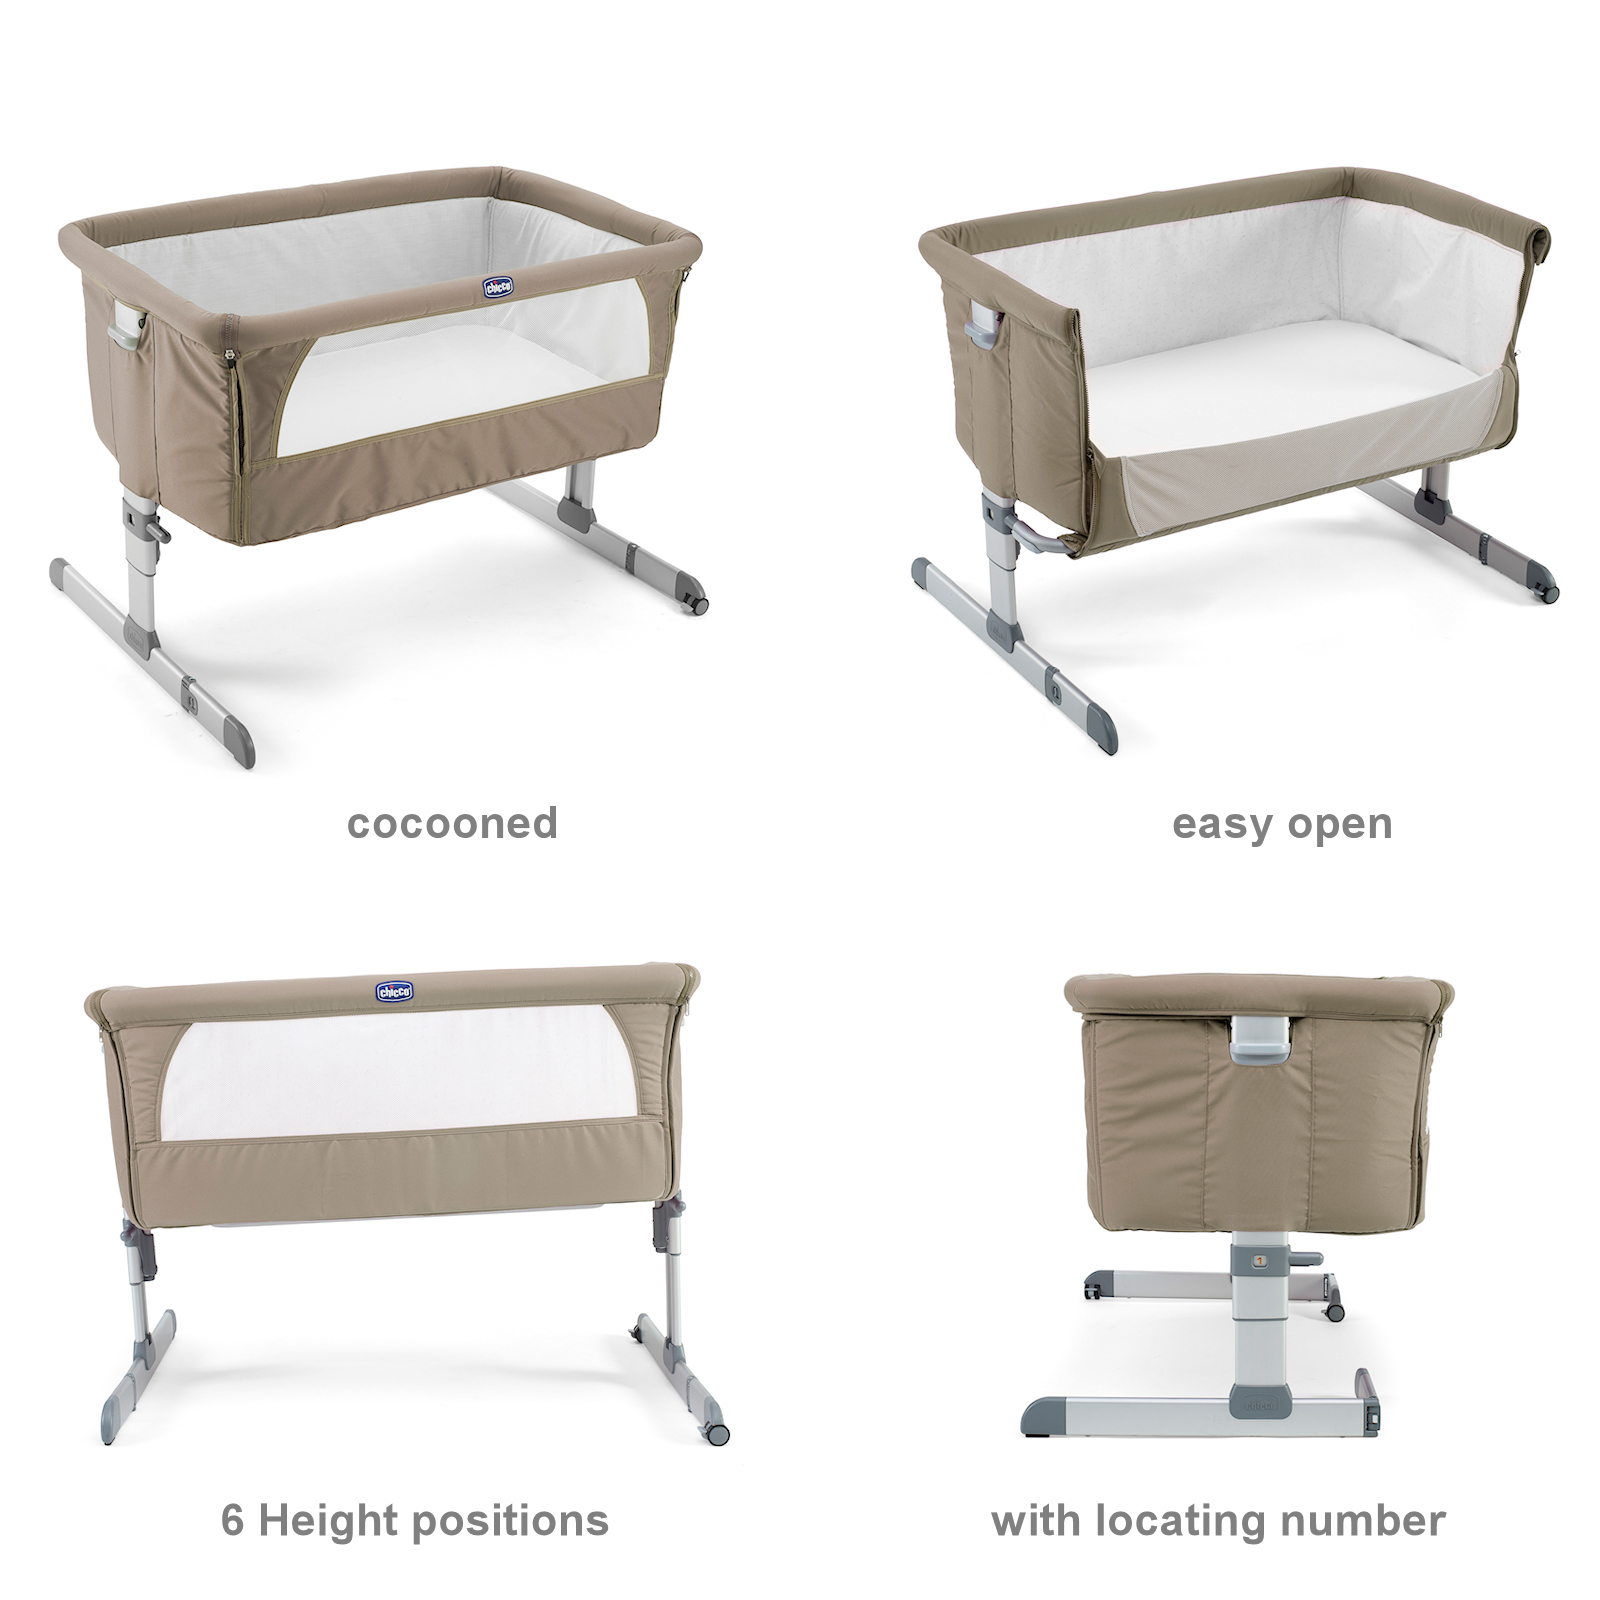 lying next crib baby soexqumda bed white videoblocks to video window cute months wooden thumbnail footage big in stock old cribs